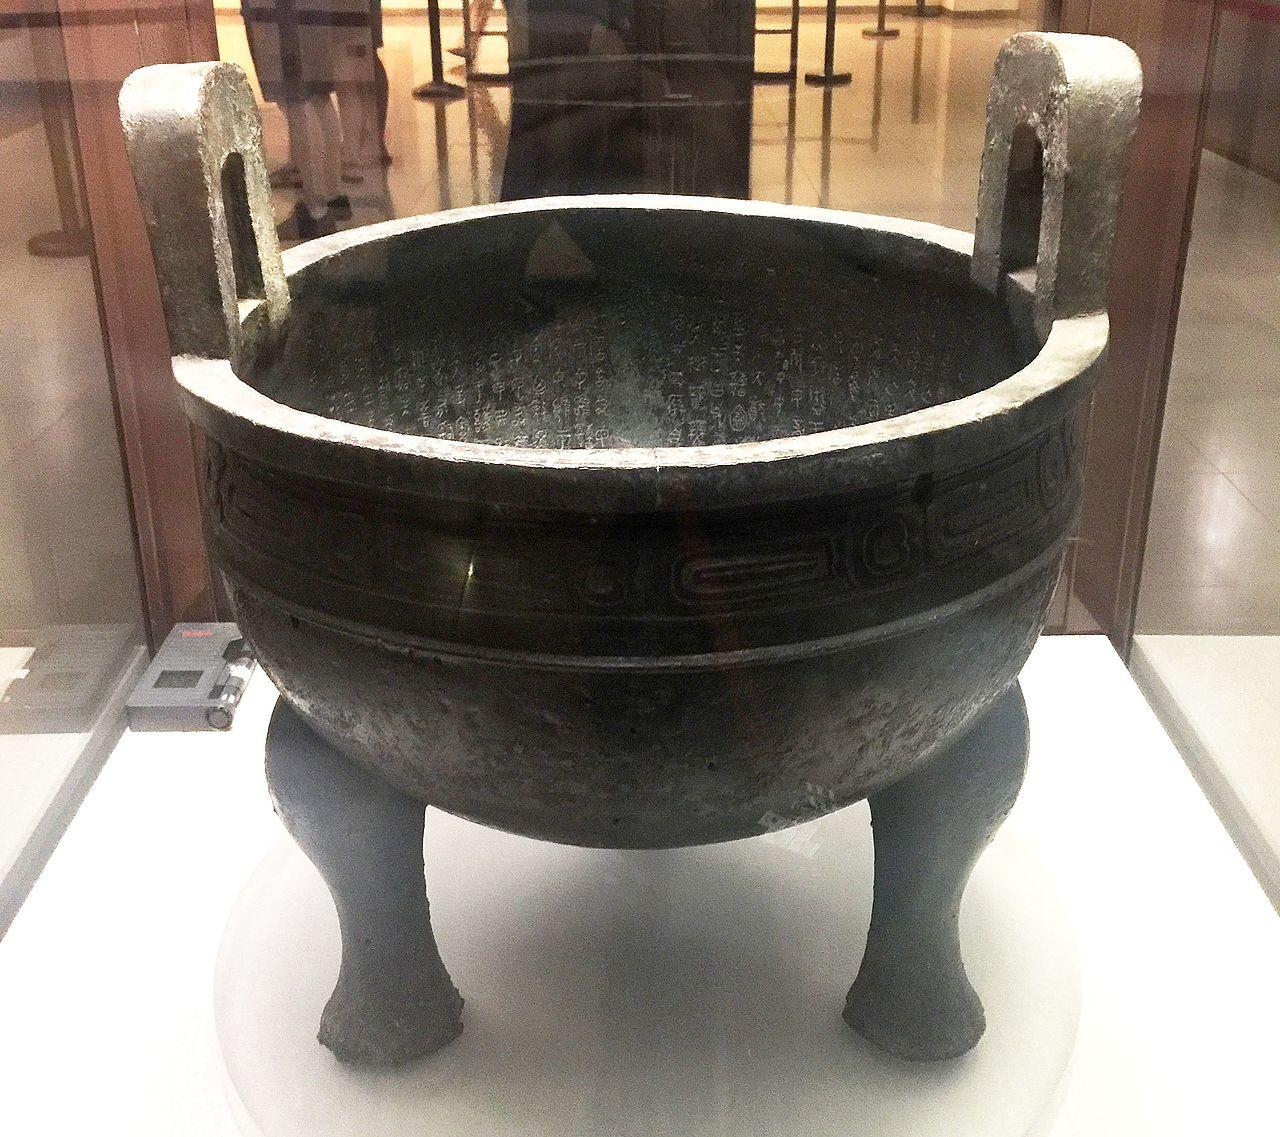 The Mao Gongding during the Western Zhou dynasty, from the collection of the National Palace Museum. (Image: Jason22 via wikimedia CC BY-SA 4.0)